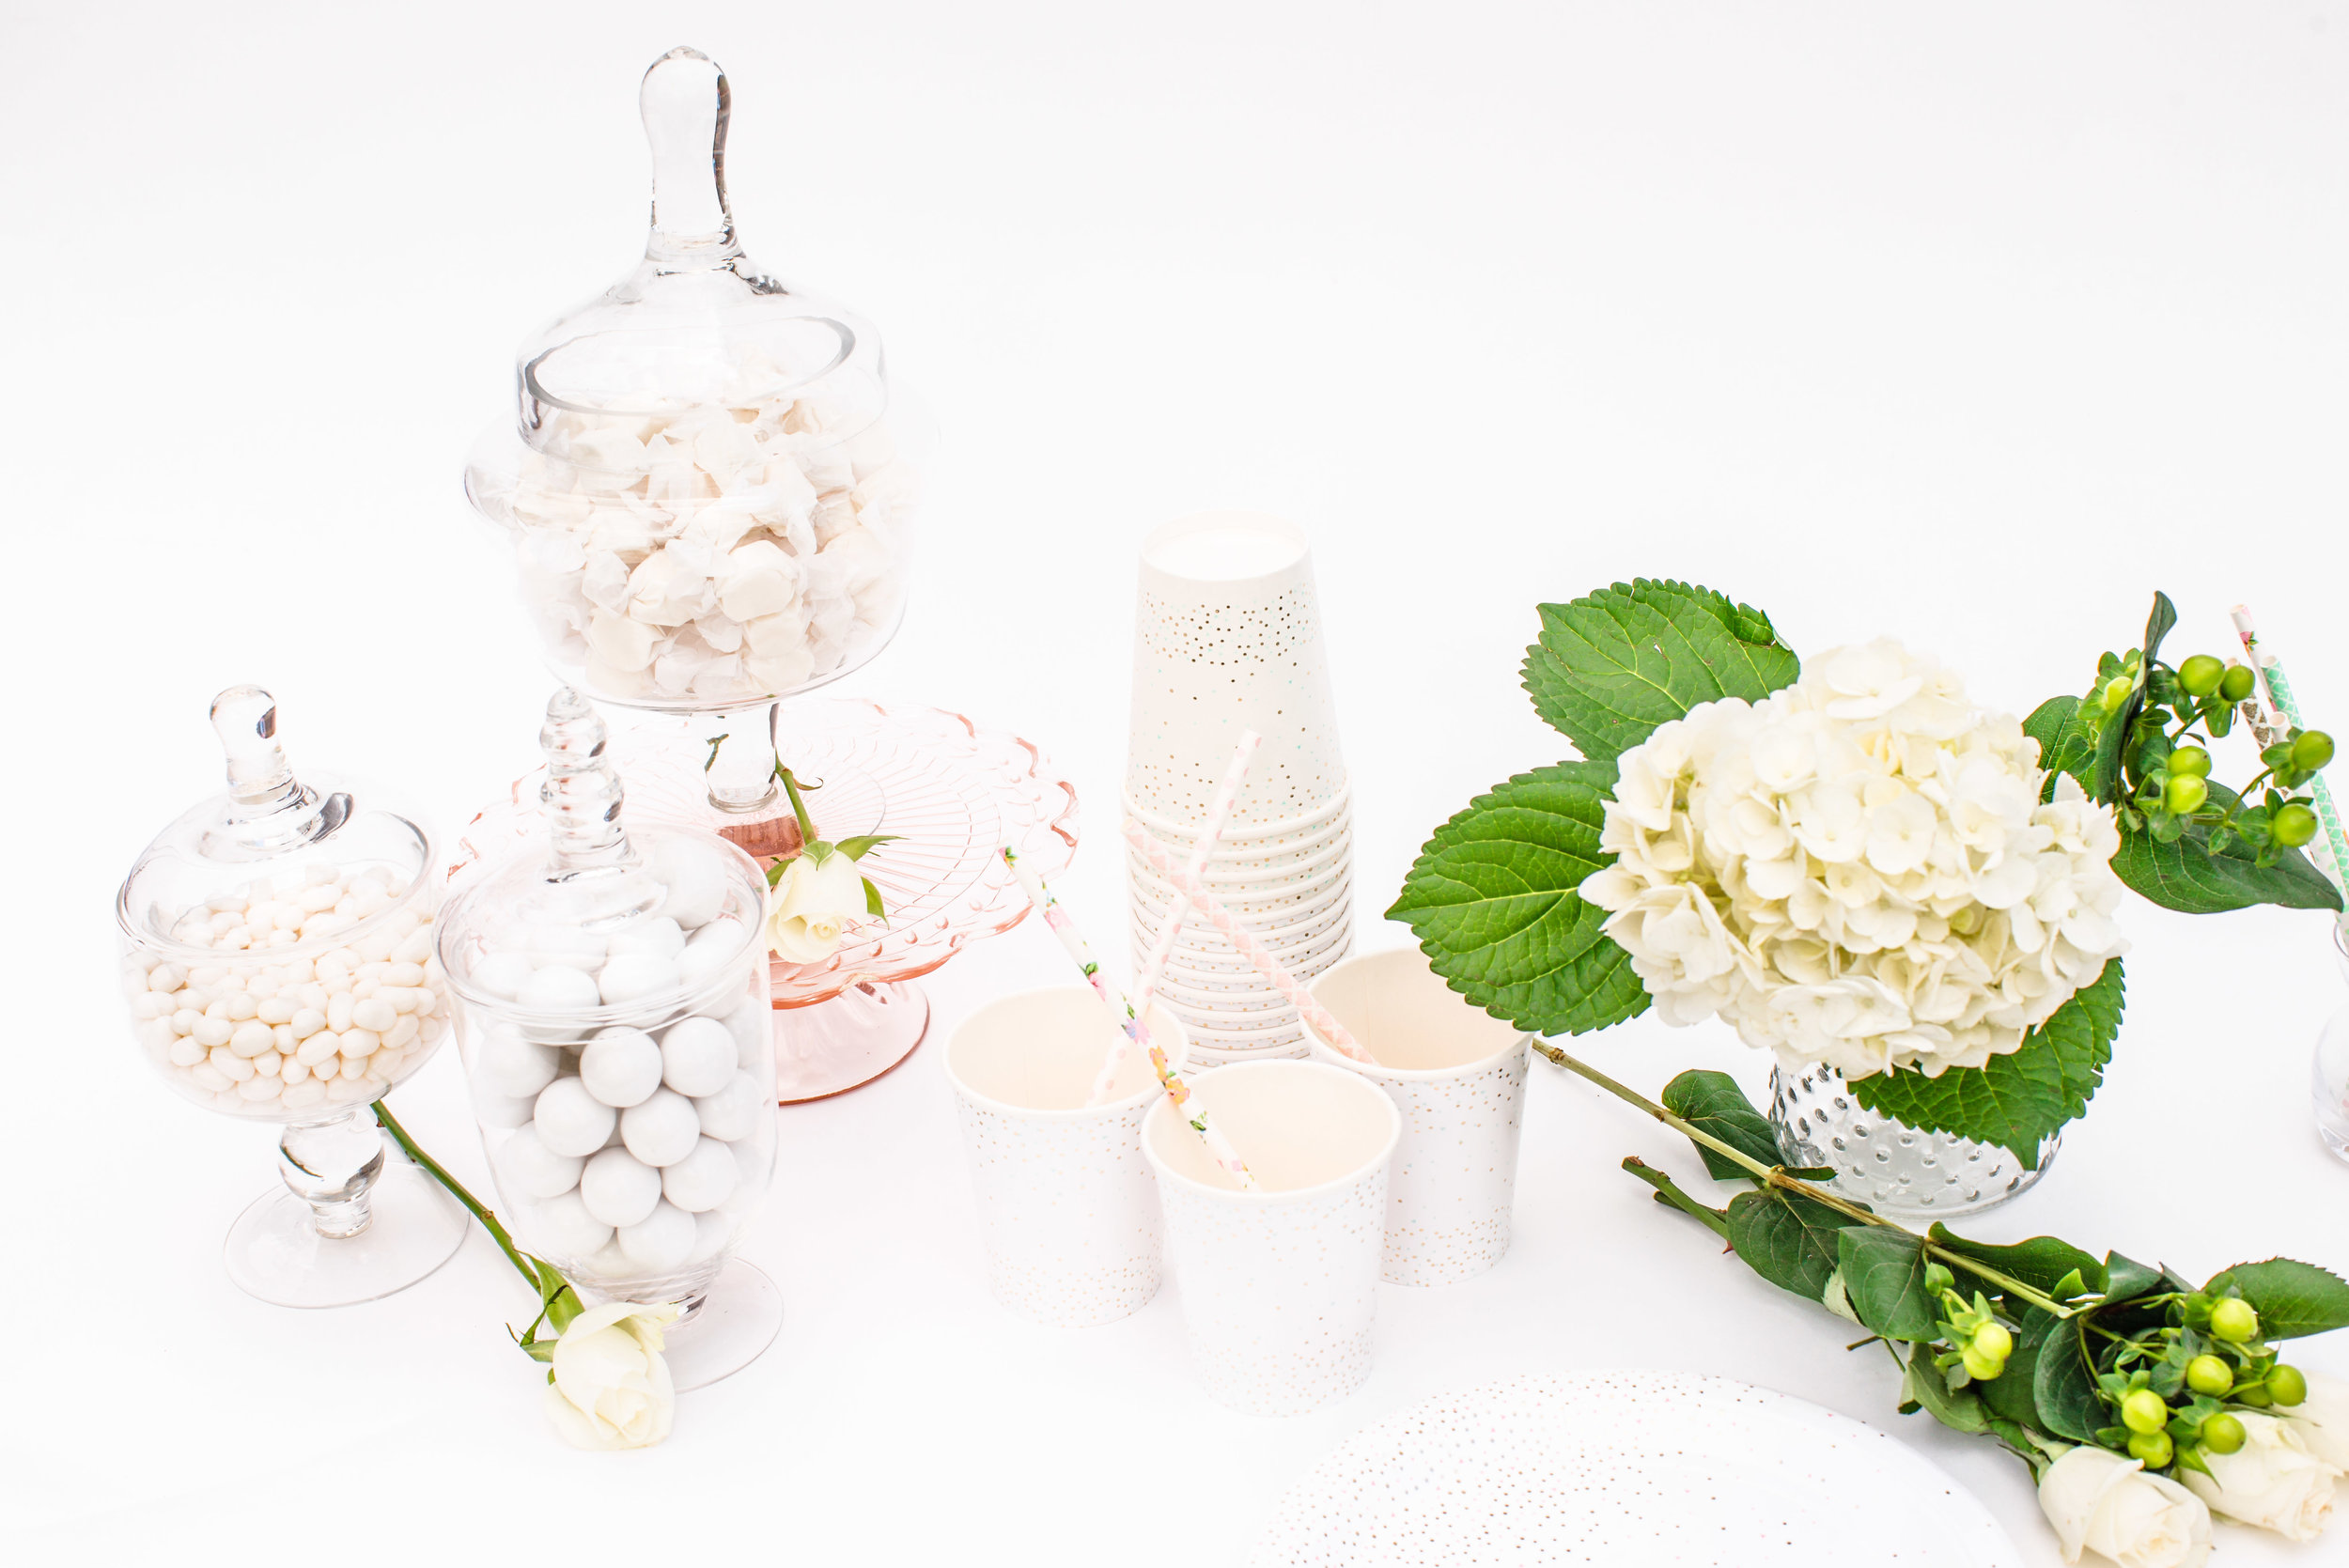 Twigs & Twirls product photography by Brightly & Co.